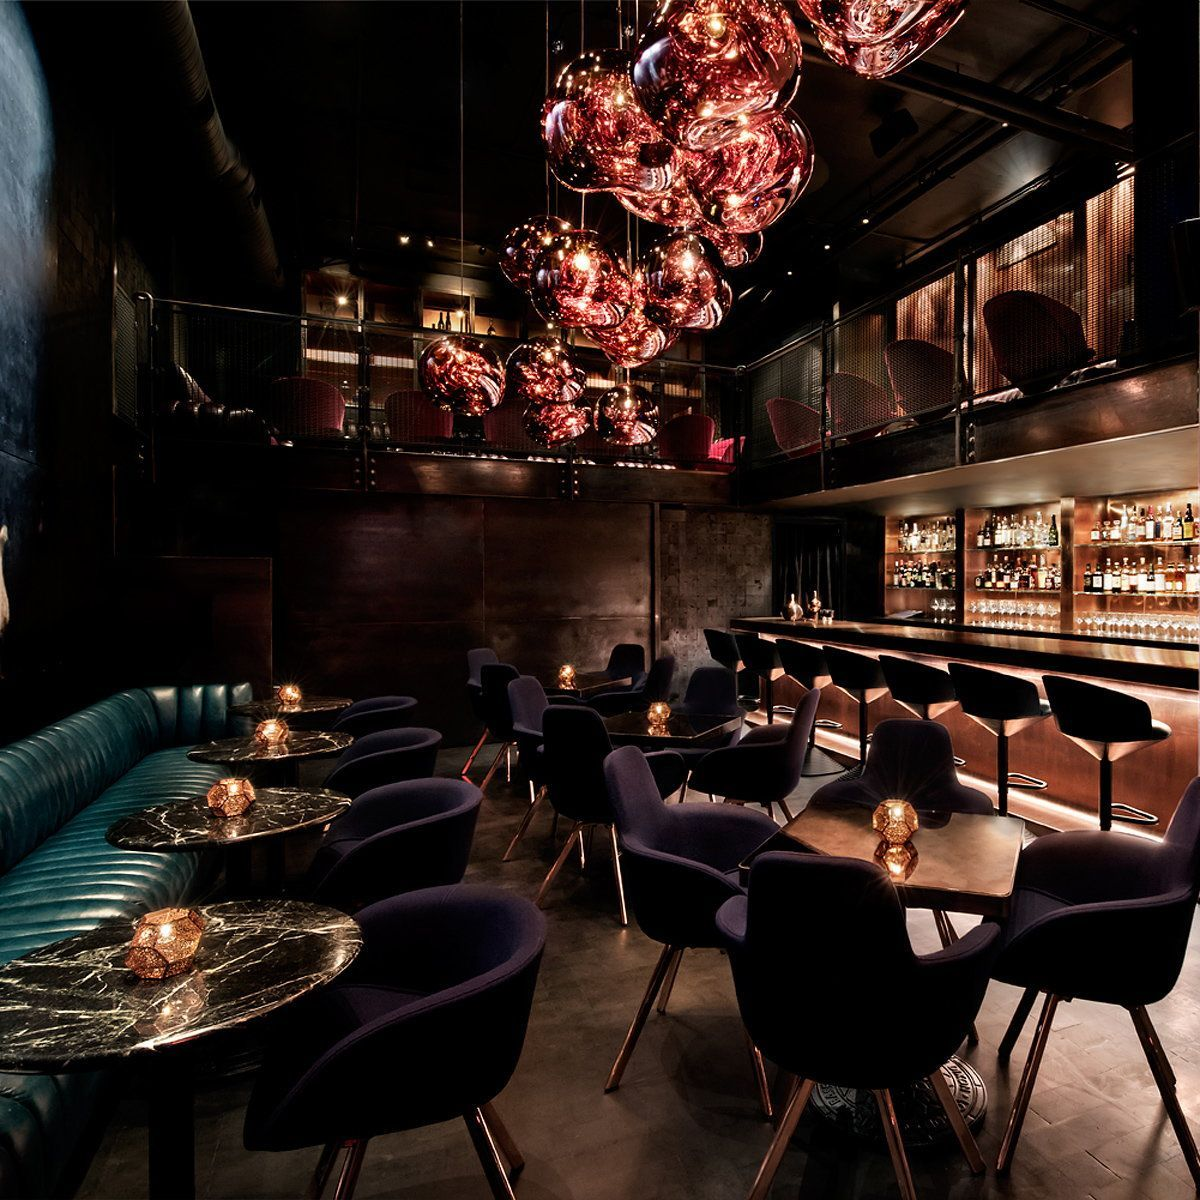 Bar And Lounge Interior Design: Find The Lighting Fixture That Will Inspire Your Next